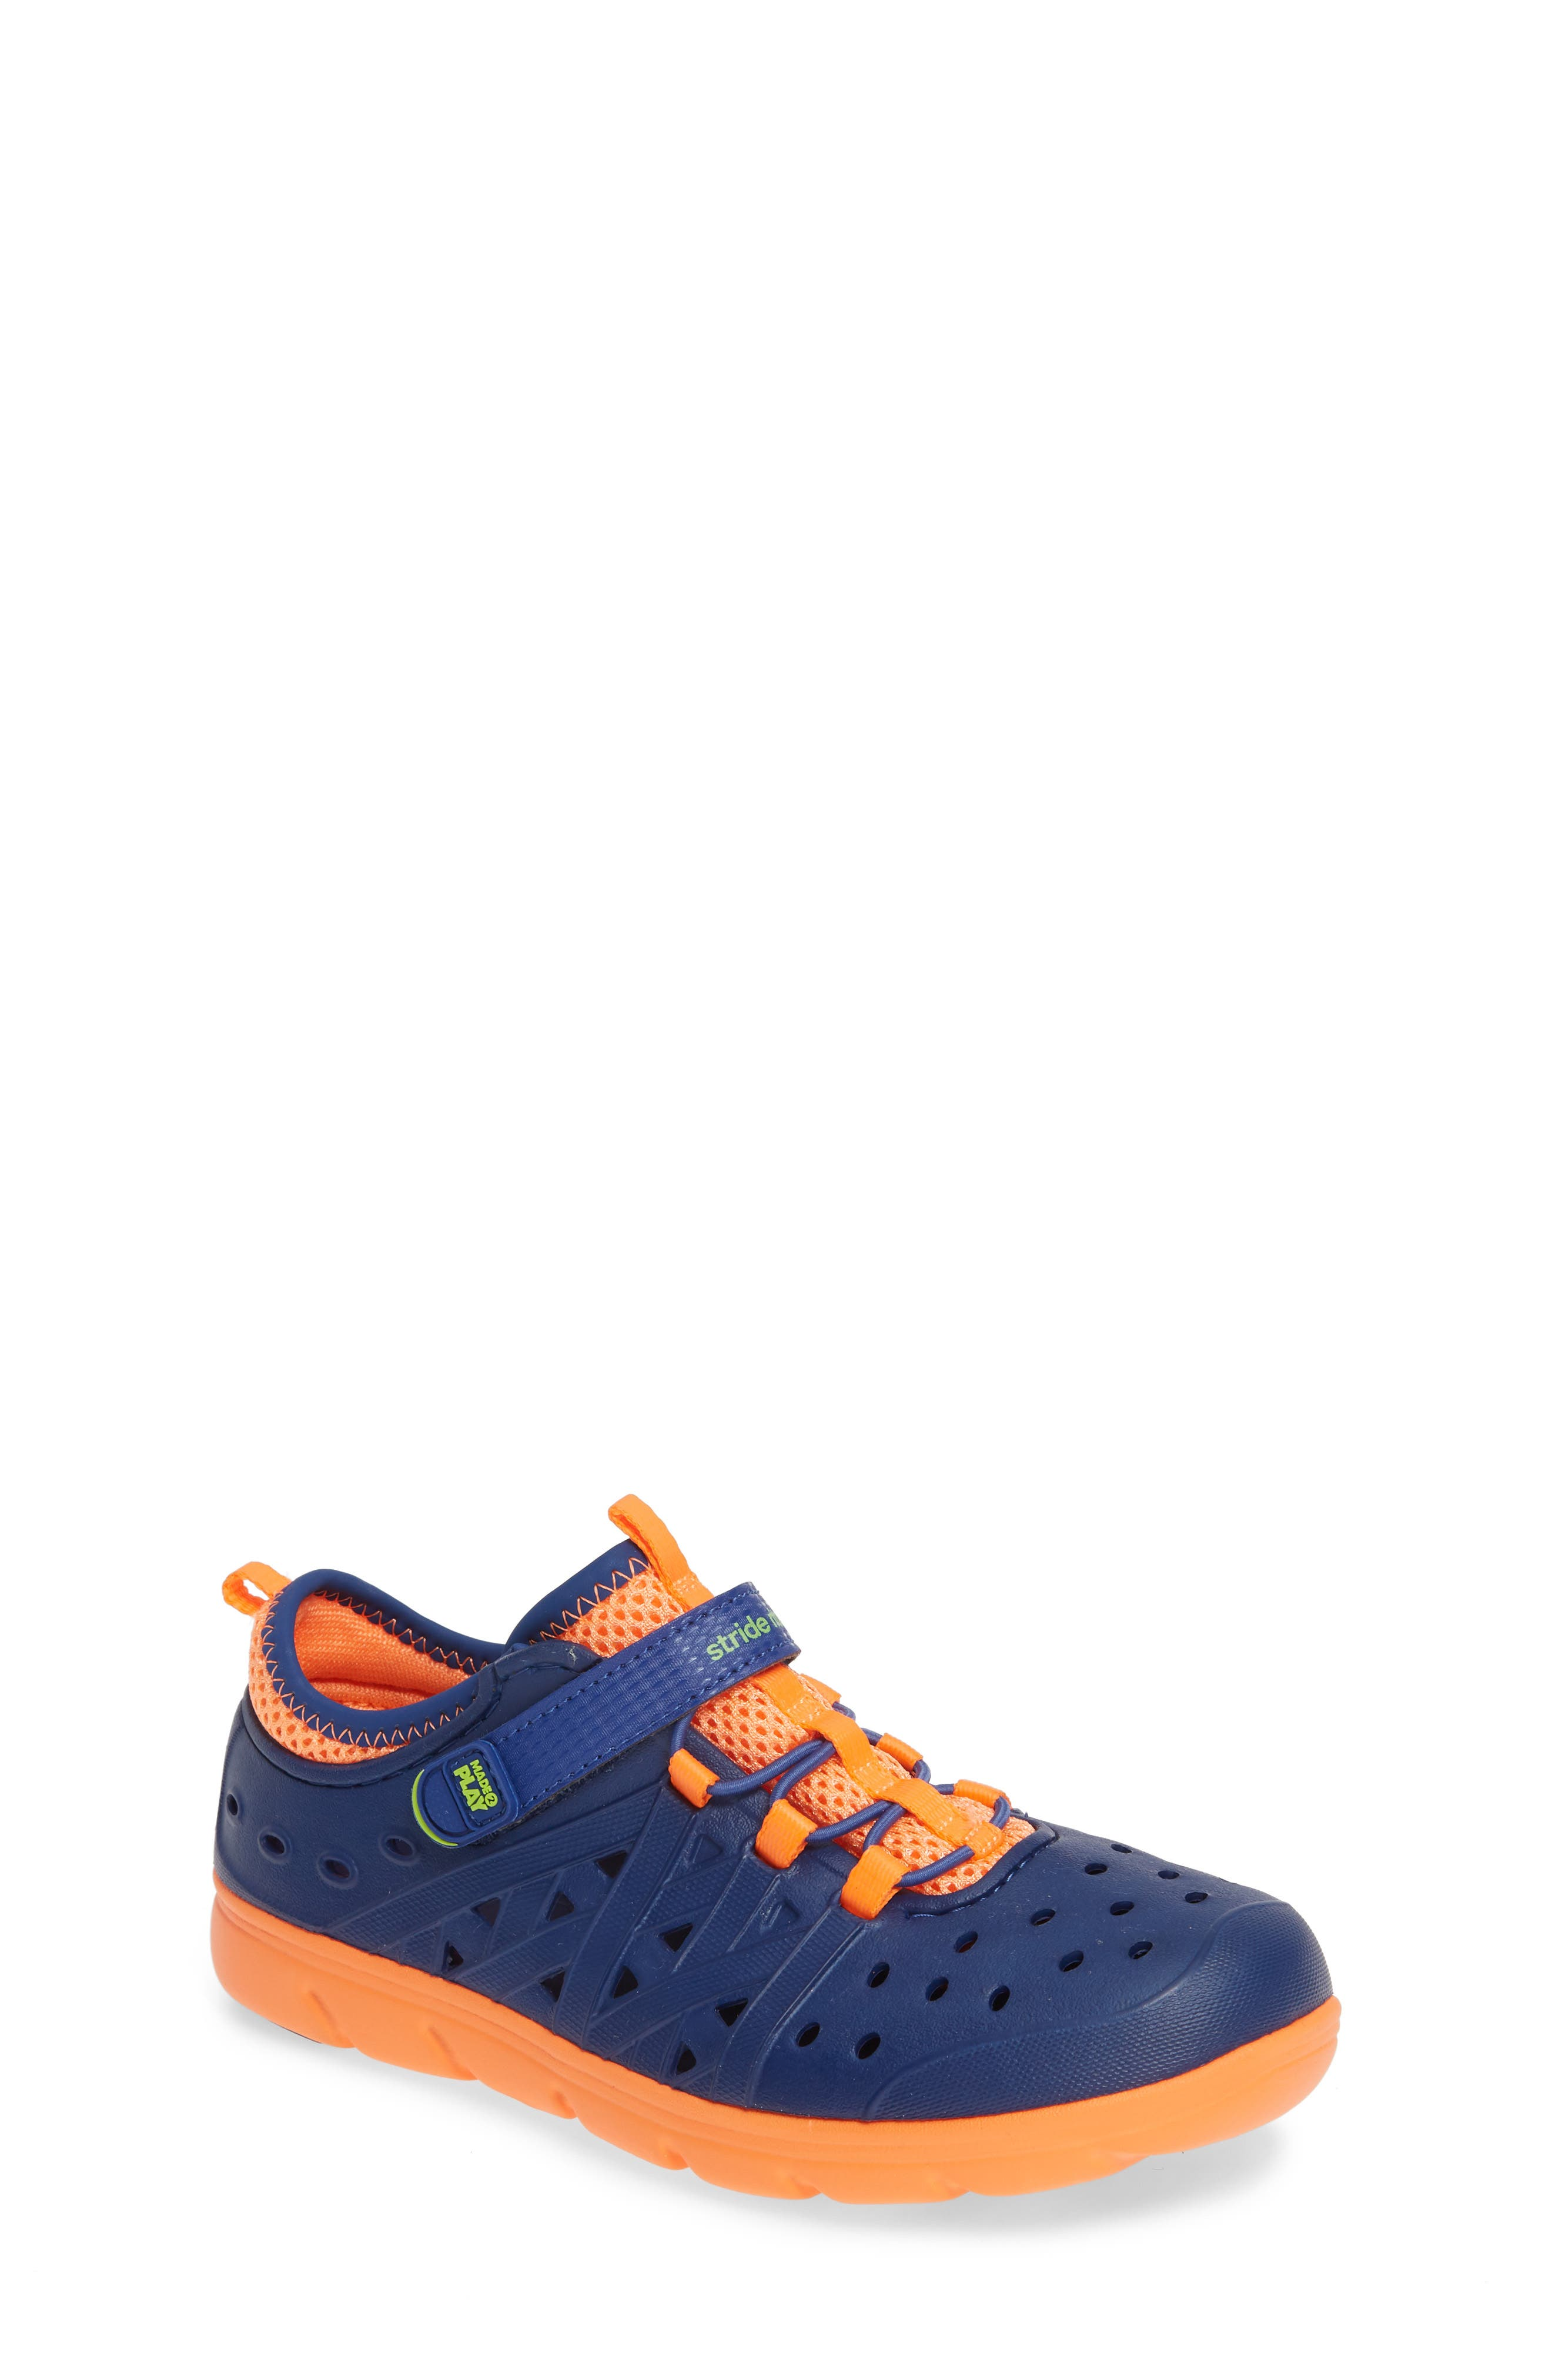 Made2Play<sup>®</sup> Phibian Sneaker, Main, color, NAVY/ NAVY